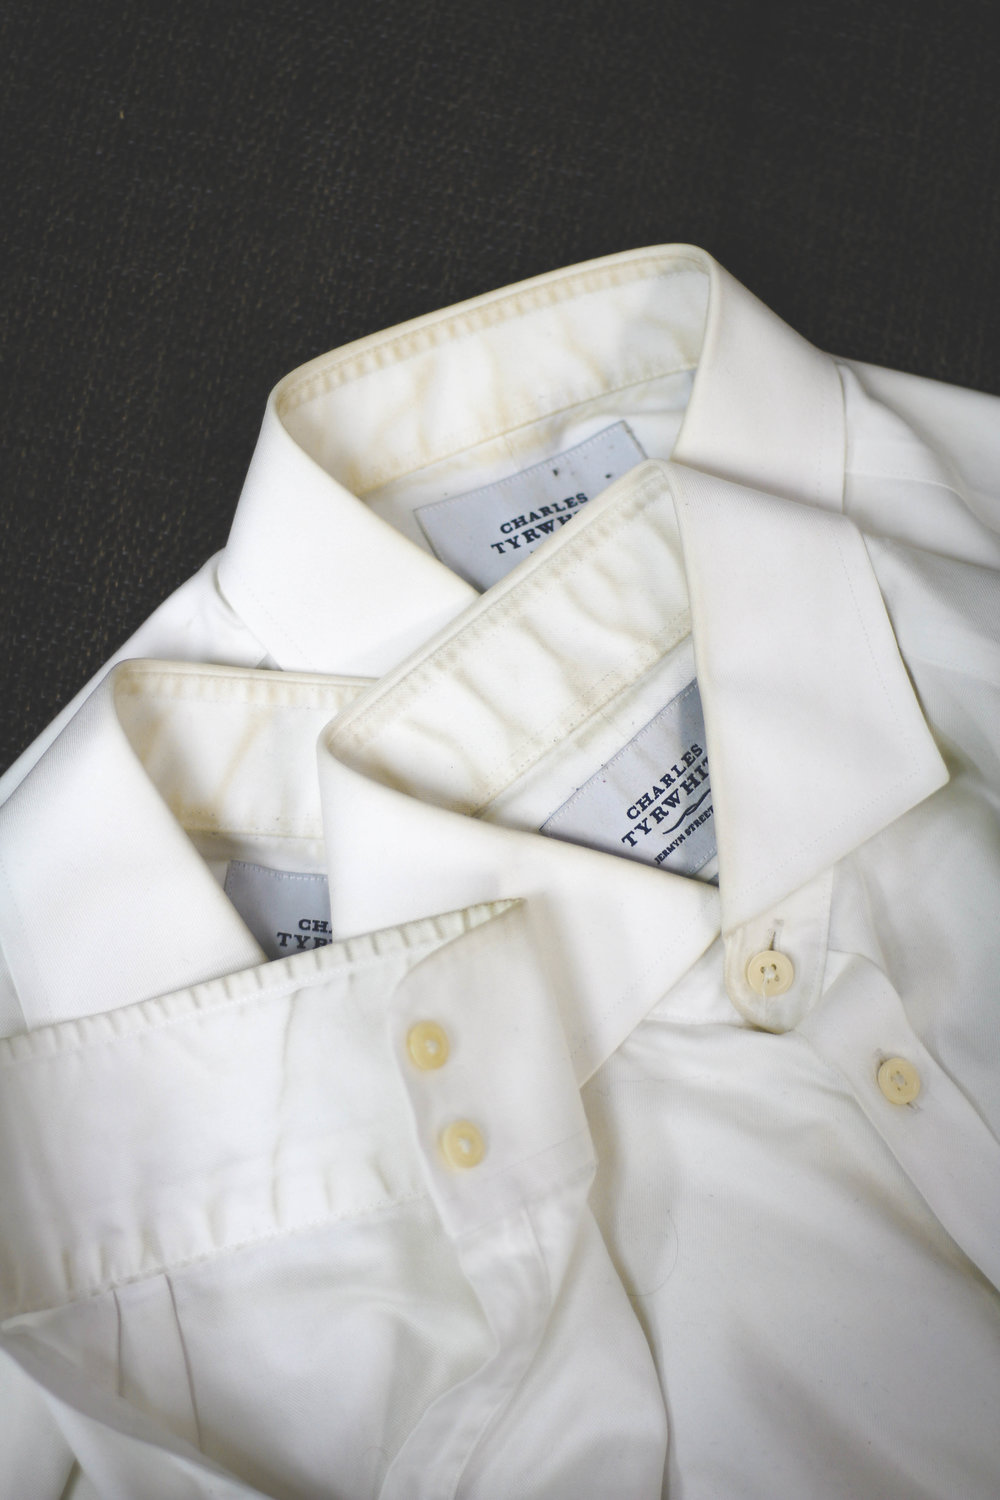 YUCK! Let's get rid of these horrible yellow stains that come in shirt collars, cuffs, and armpits